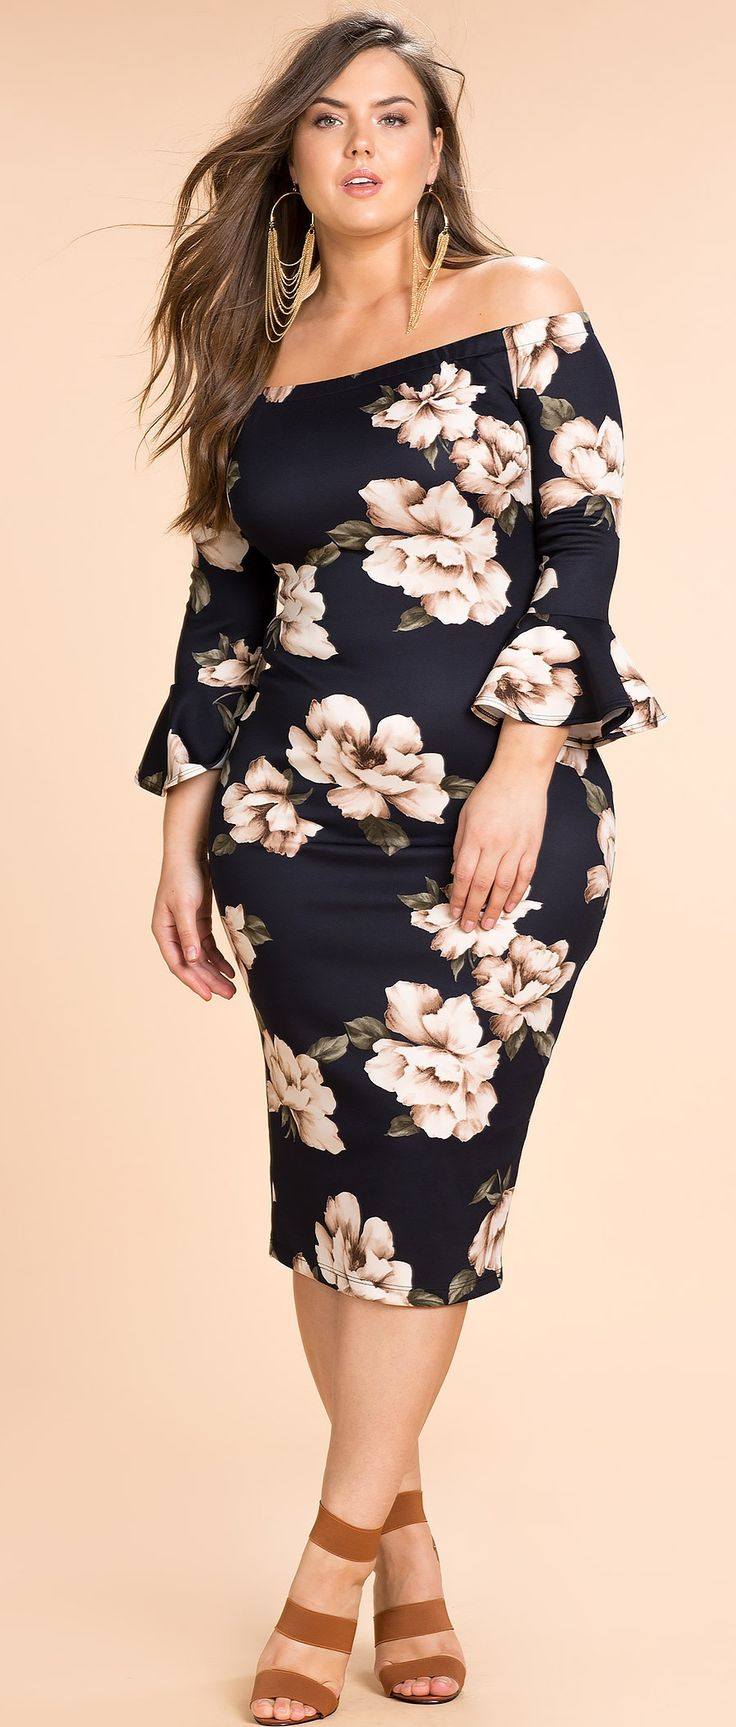 Plus Size Off Shoulder Dress  Check out our amazing collection of plus size dresses at http://wholesaleplussize.clothing/